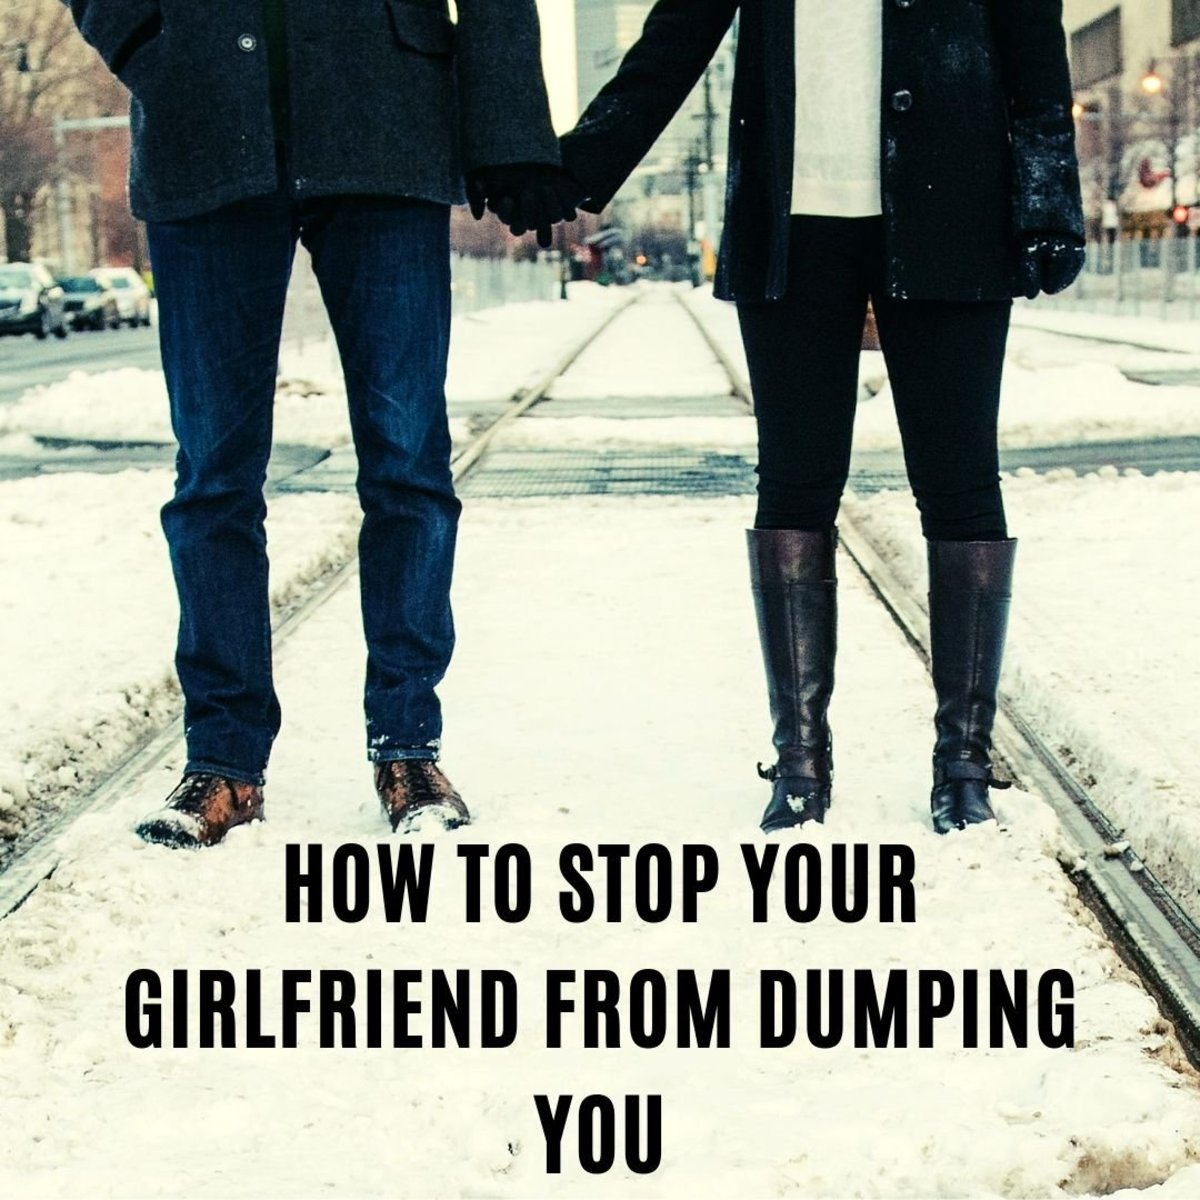 Have you been dumped by your girlfriend? Are you looking for ways to get her back? Look no further! This article will give you all the tips and tricks you need to do your best to get her back.